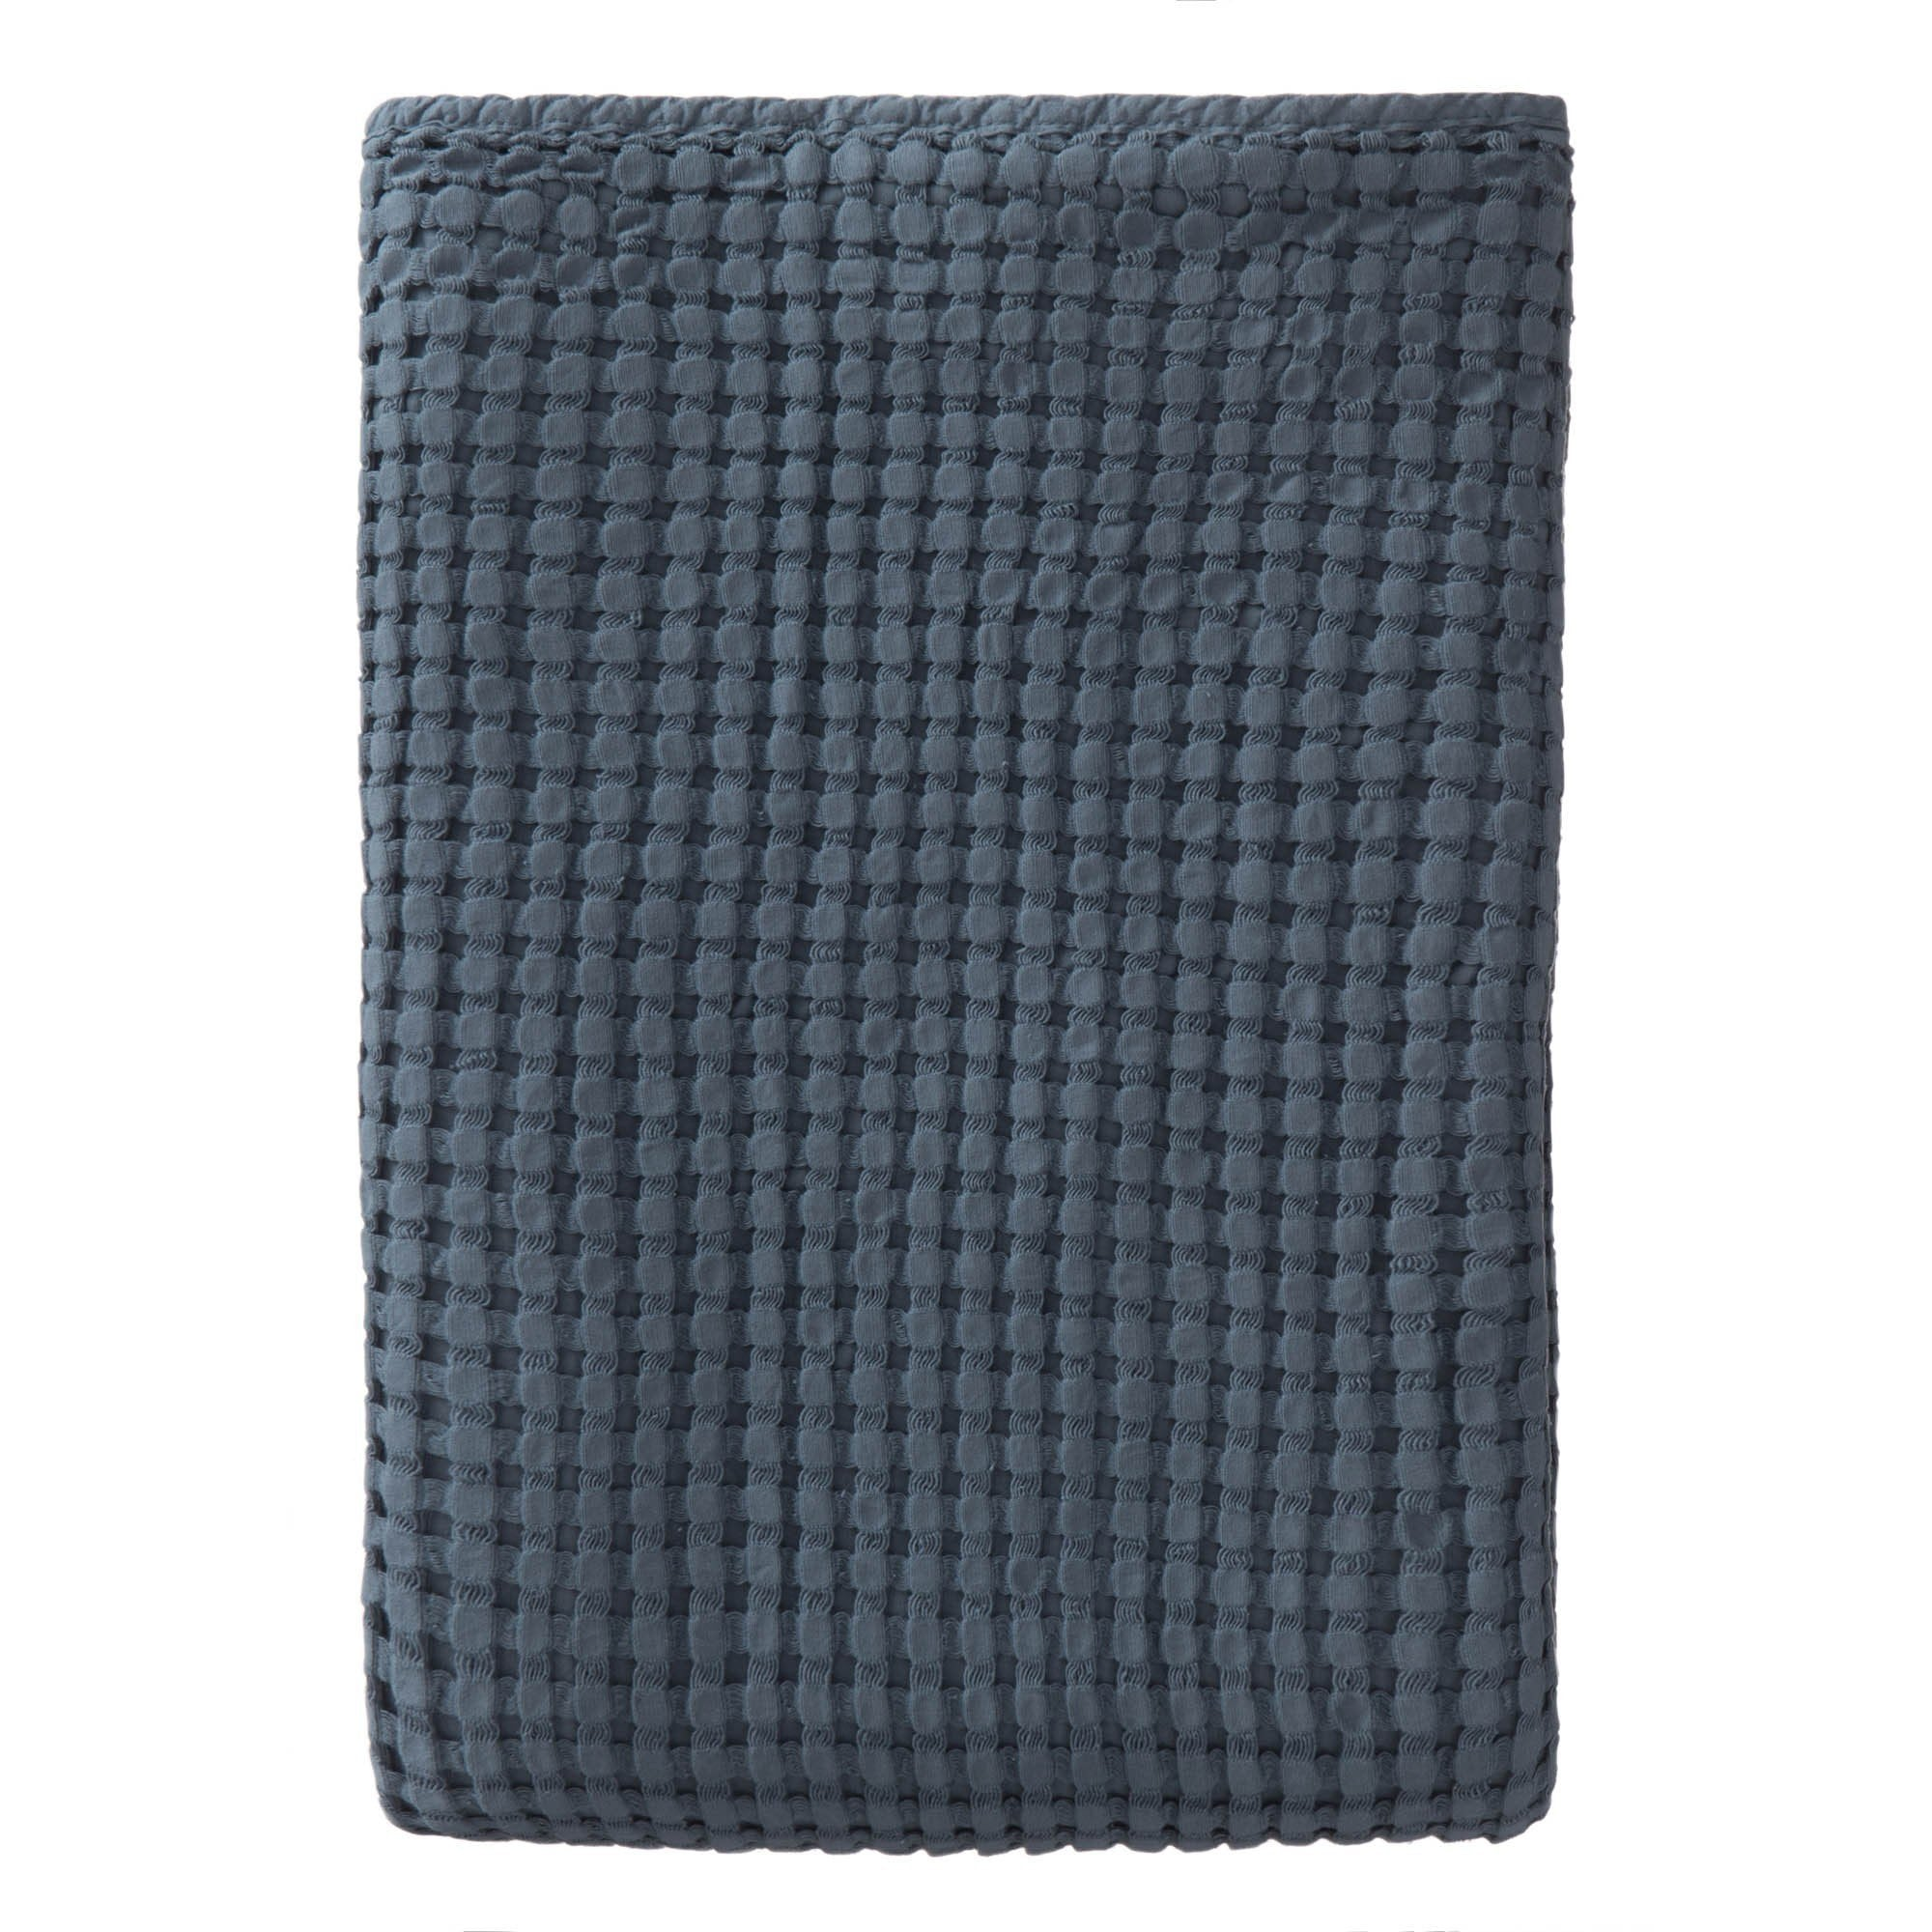 Veiros bedspread, blue grey, 100% cotton